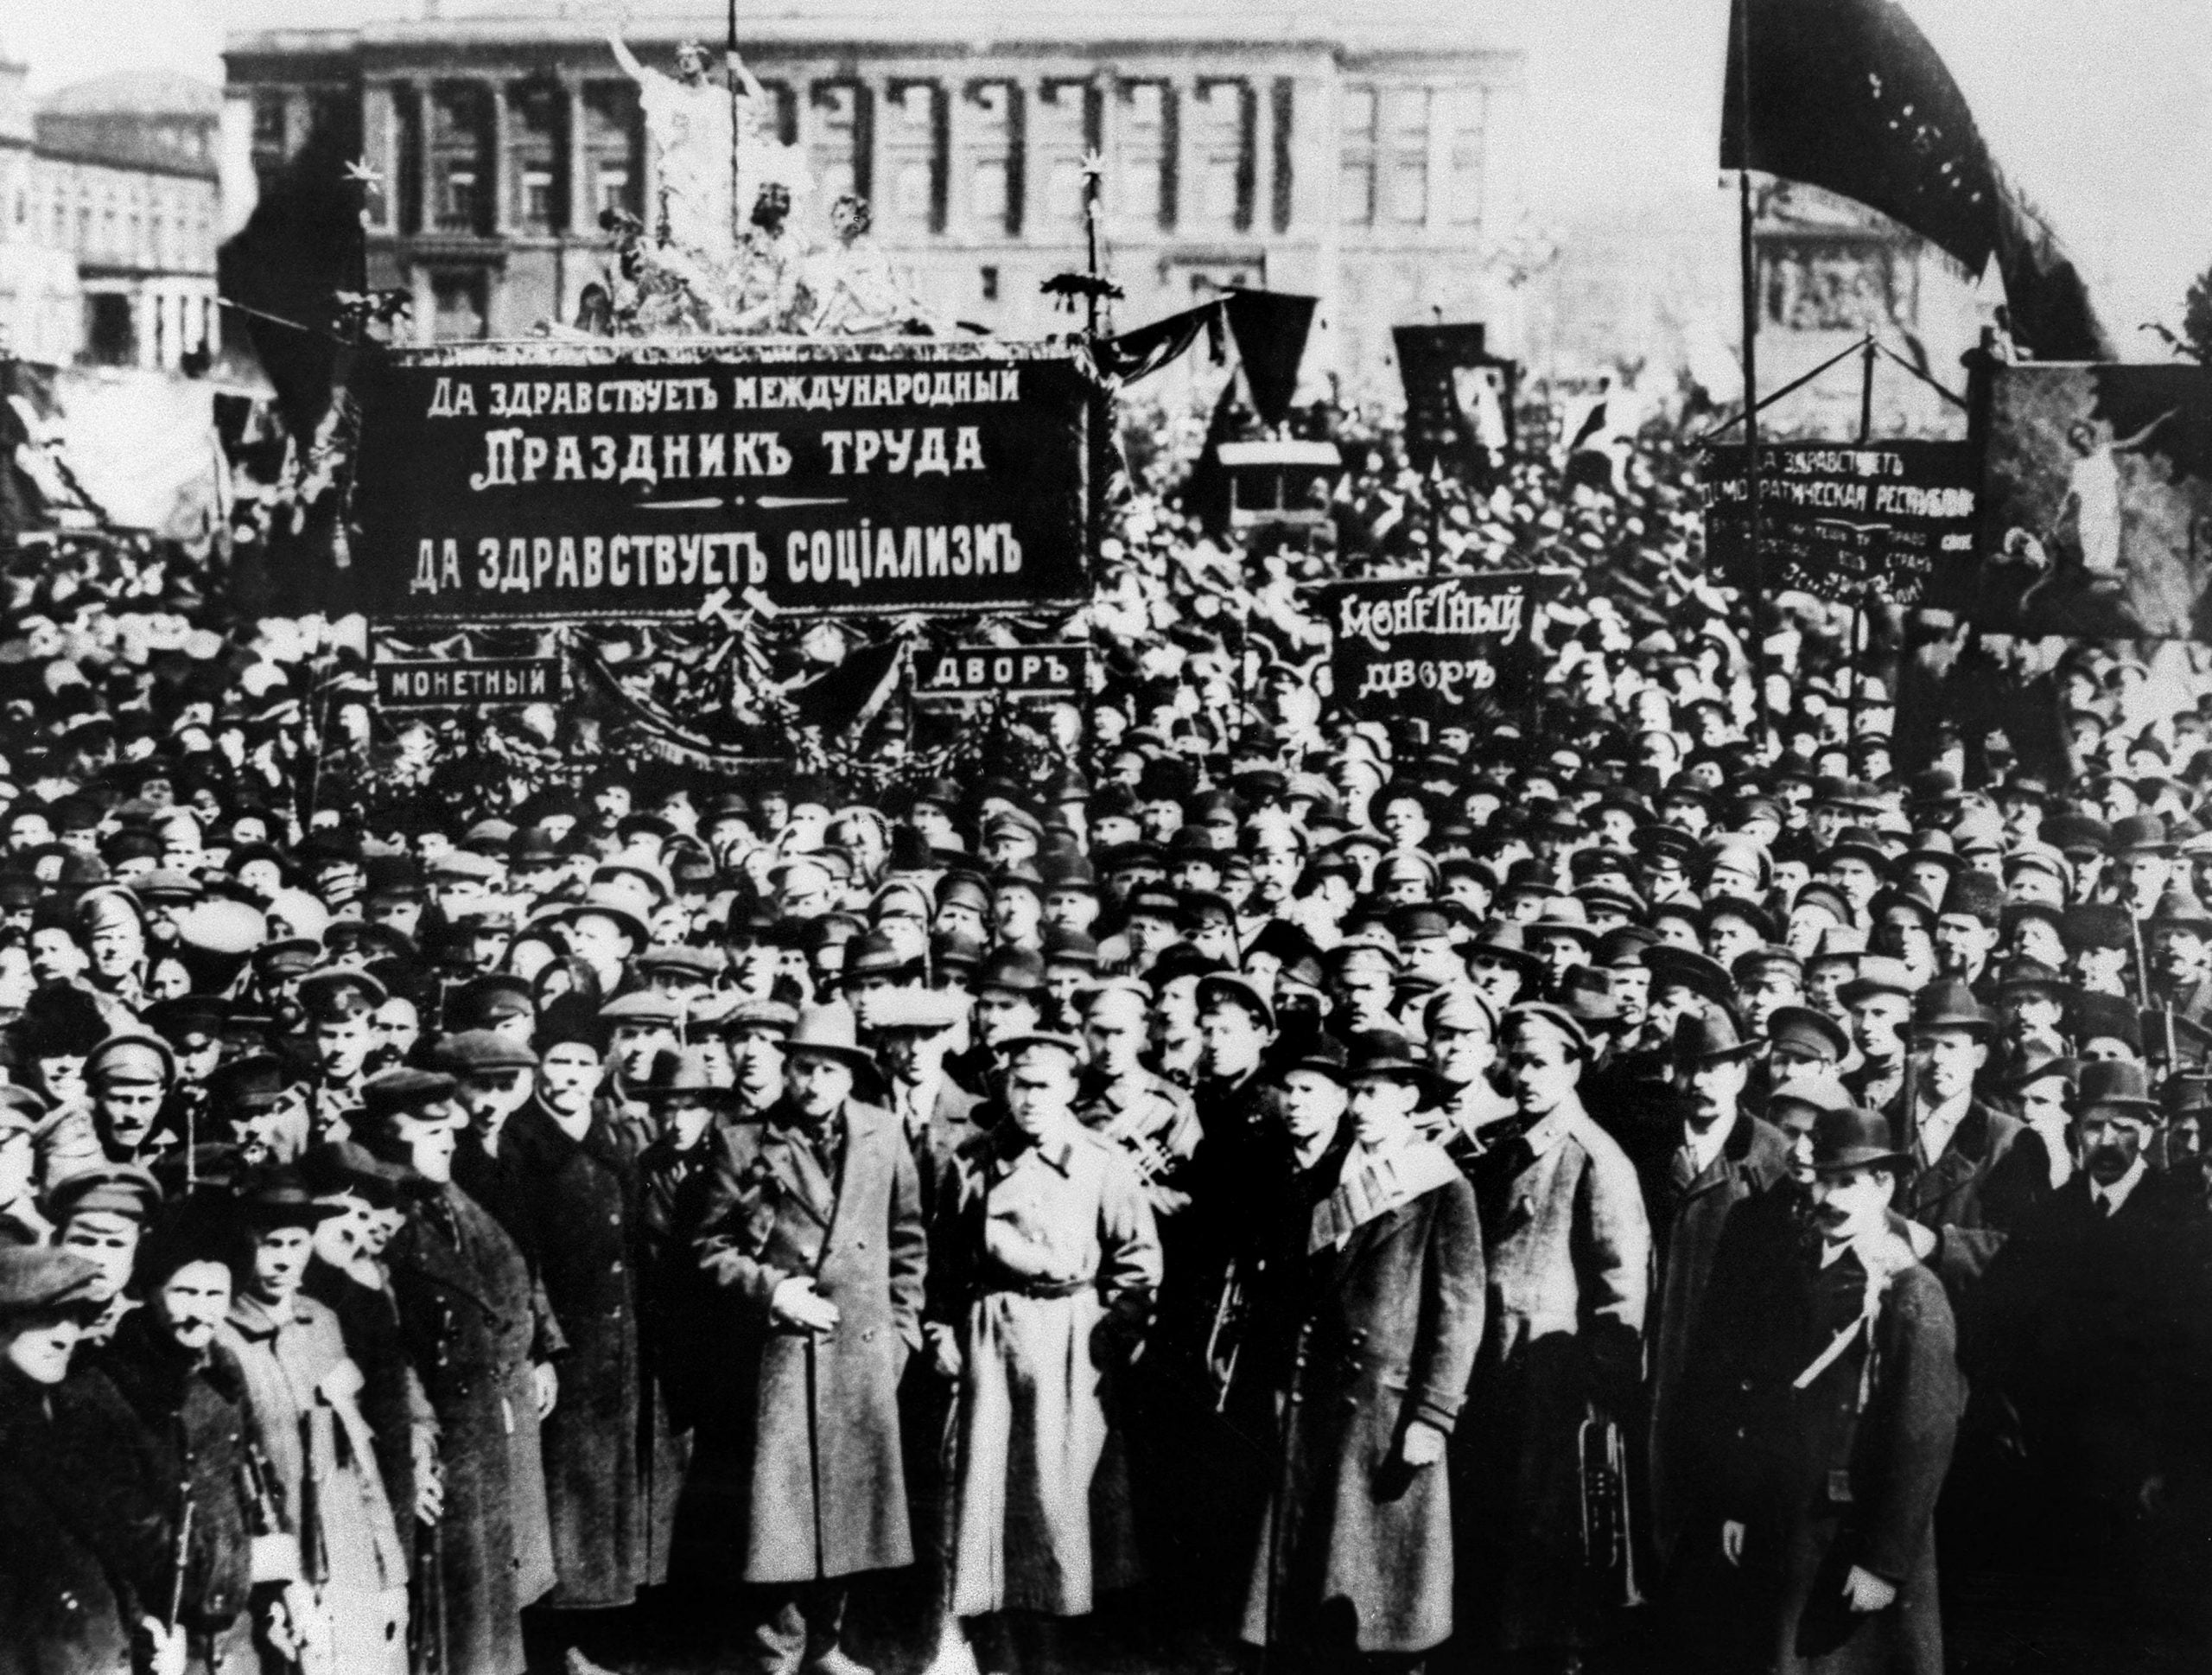 From the 1917 Revolution archive: Russia's New Holy Alliance